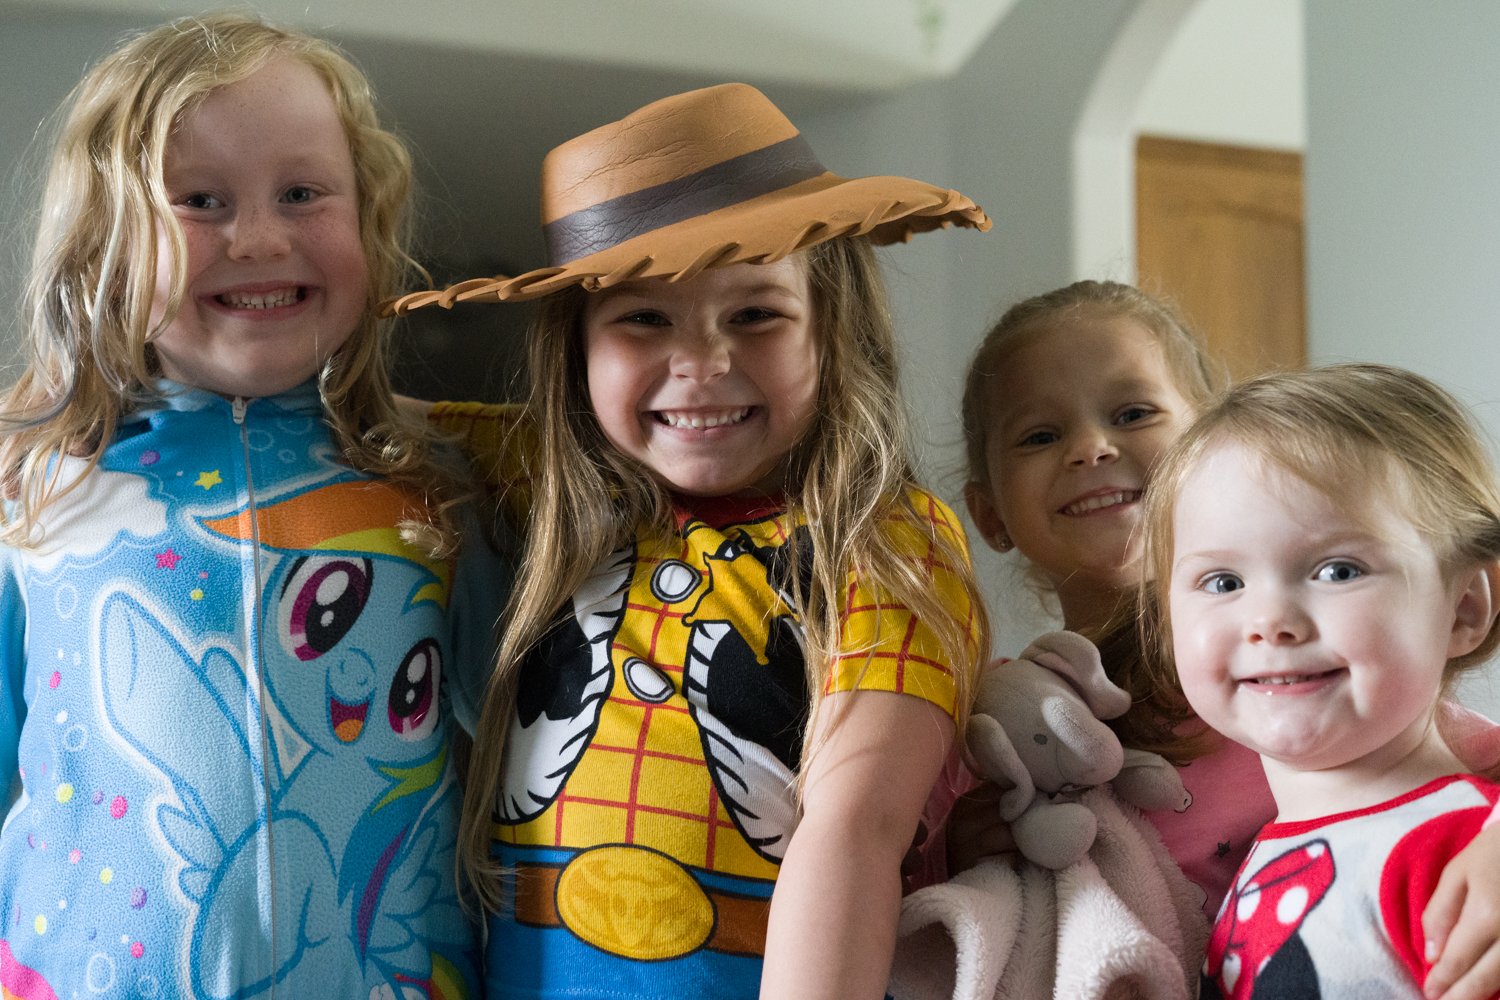 Daycare children enjoying a day of dress ups play in West Fargo, ND.